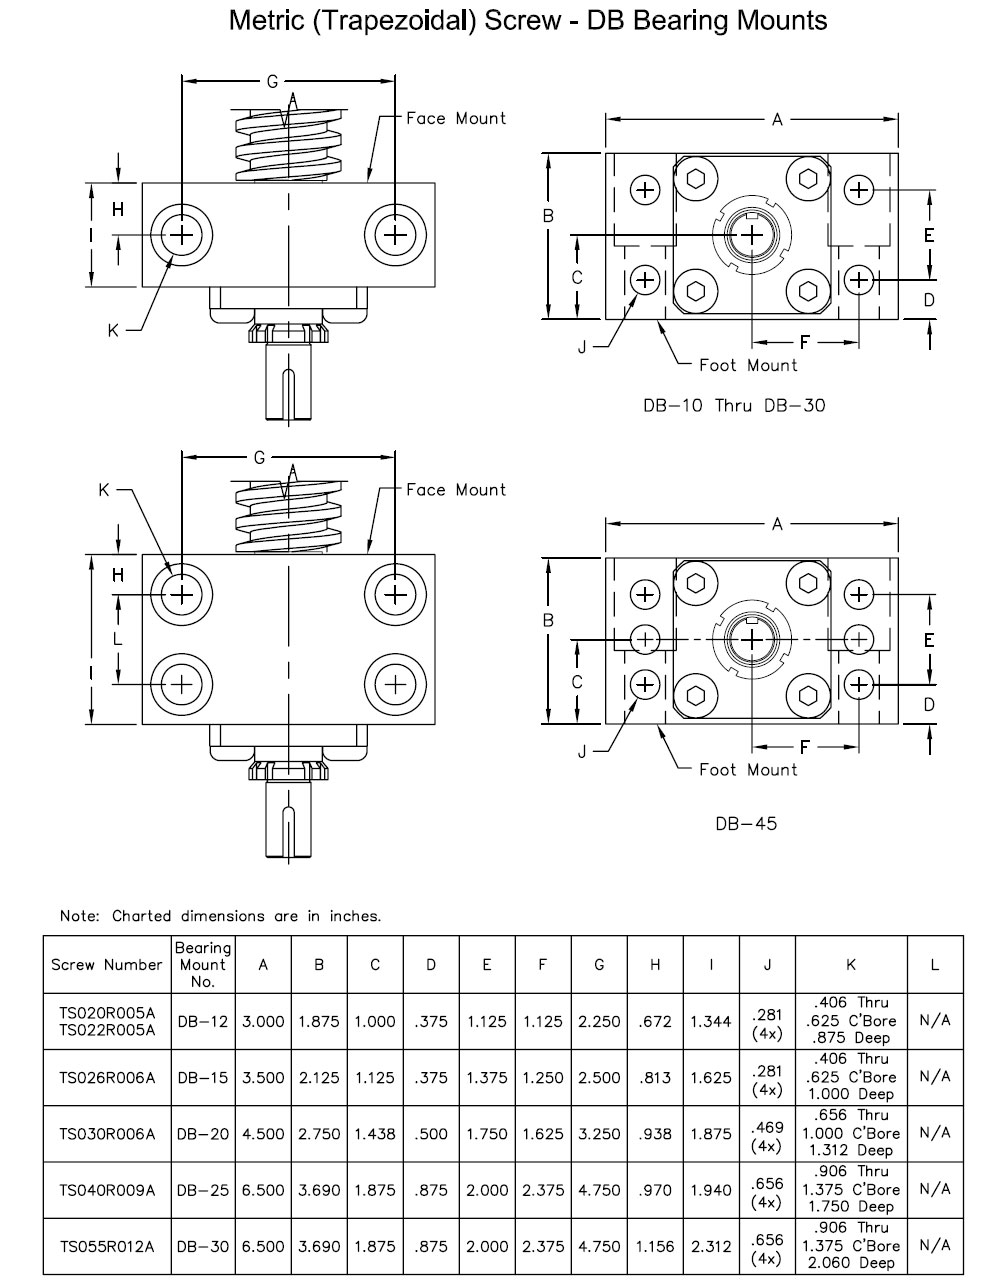 DB Bearing Blocks and Screw End Conditions 2